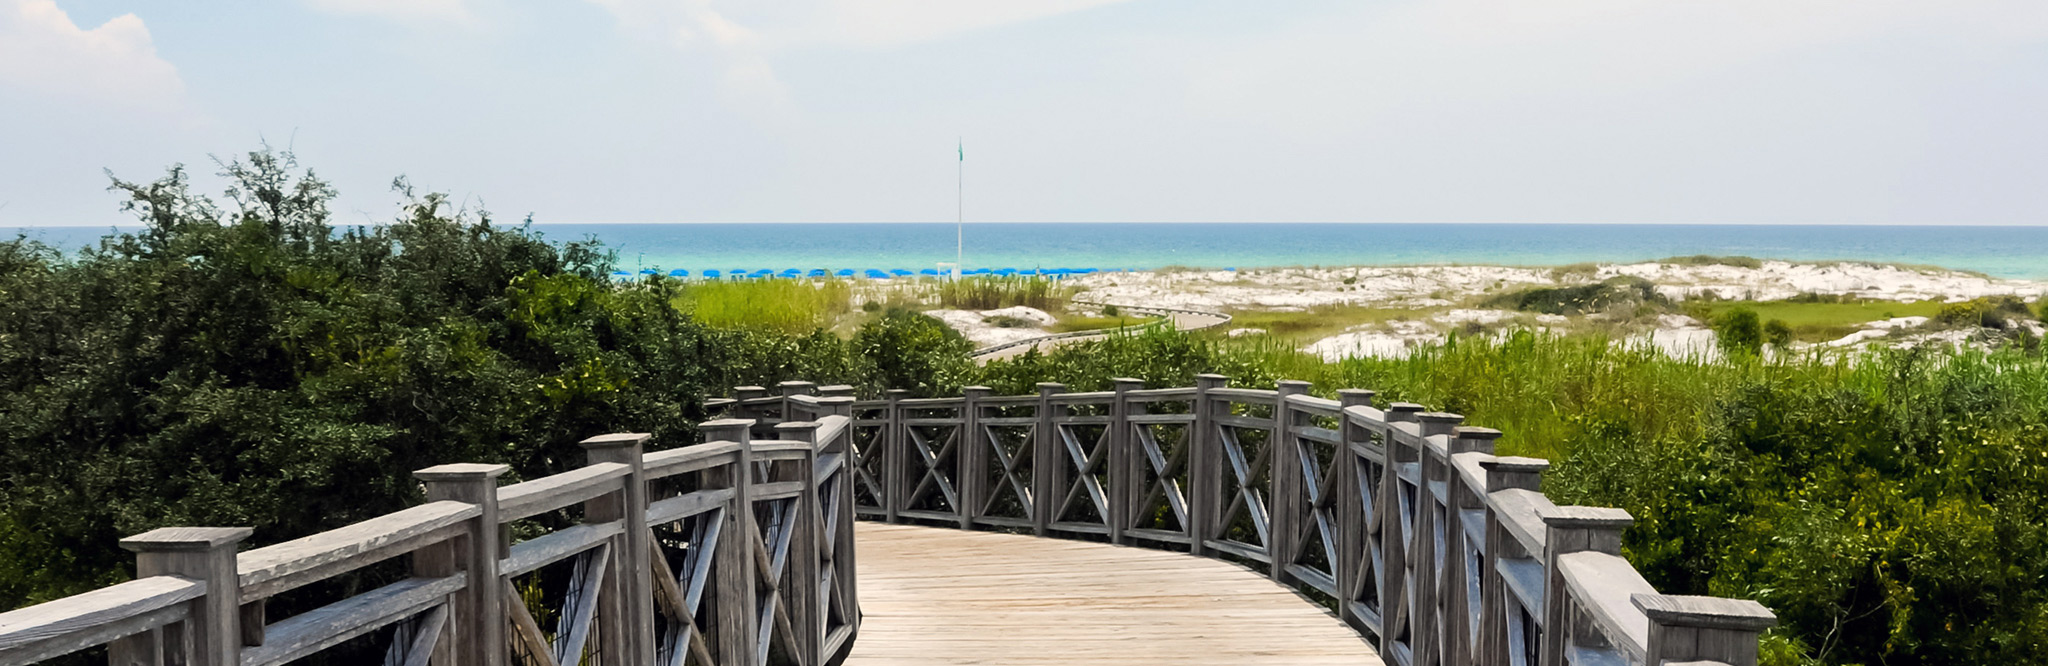 Contact our companies to learn more about beach vacation rentals, real estate sales and residential leasing and apartments in NW Florida and coastal Alabama